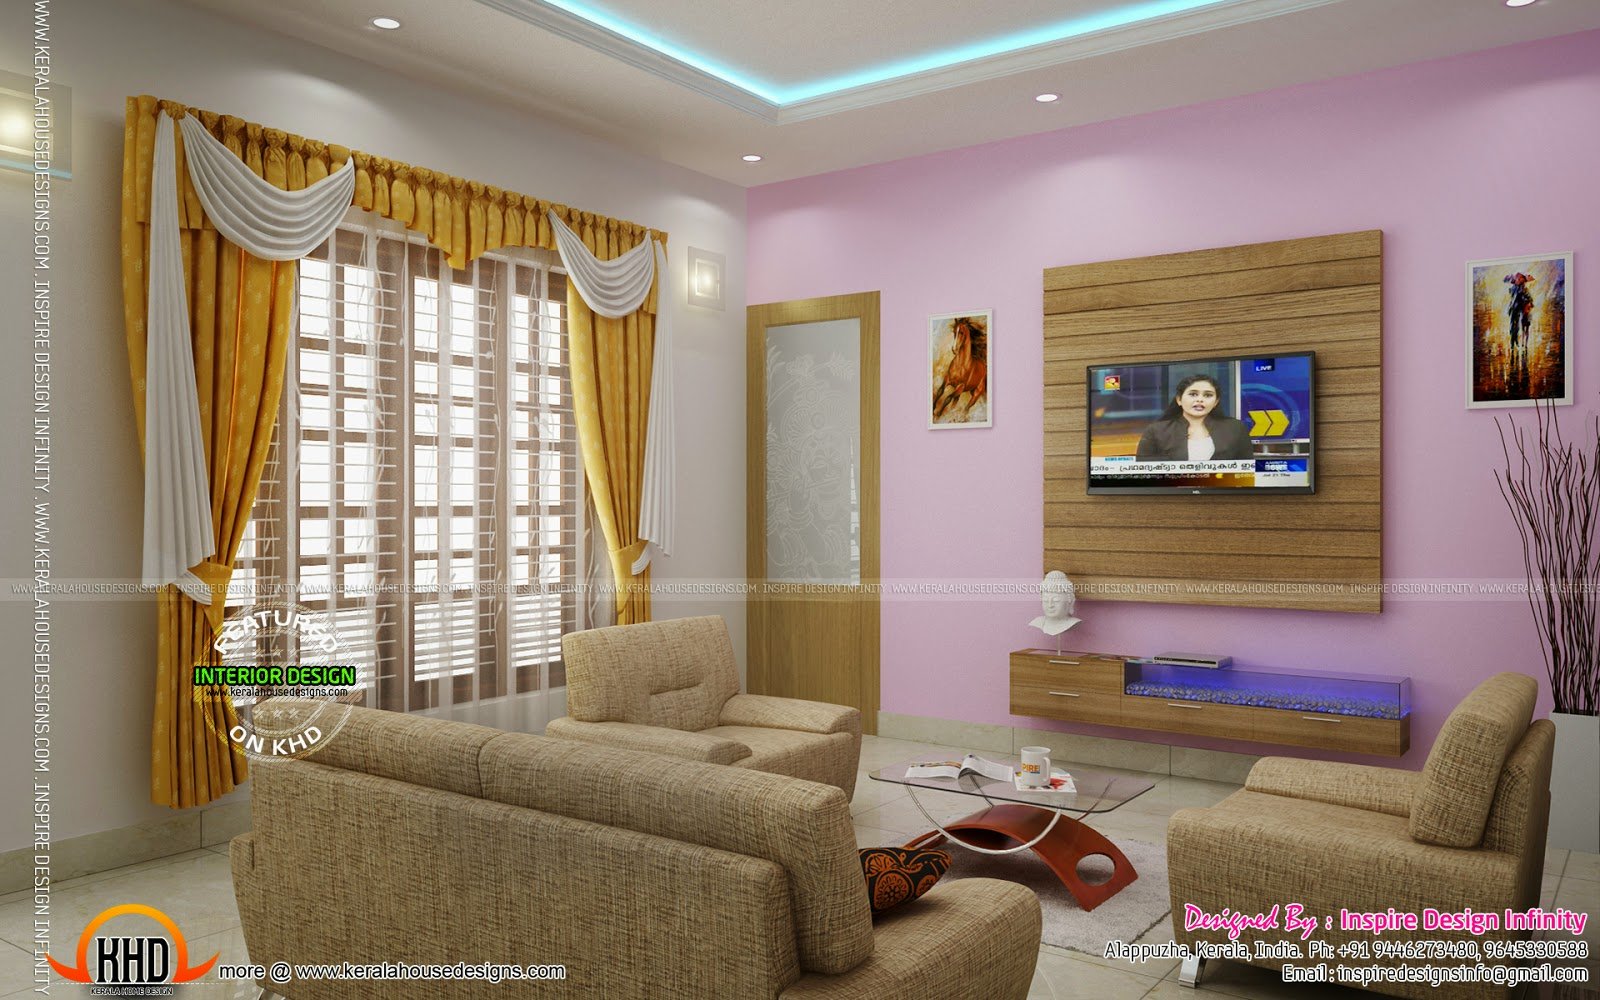 Kerala home design and floor plans interior designs by for Interior designs in kerala